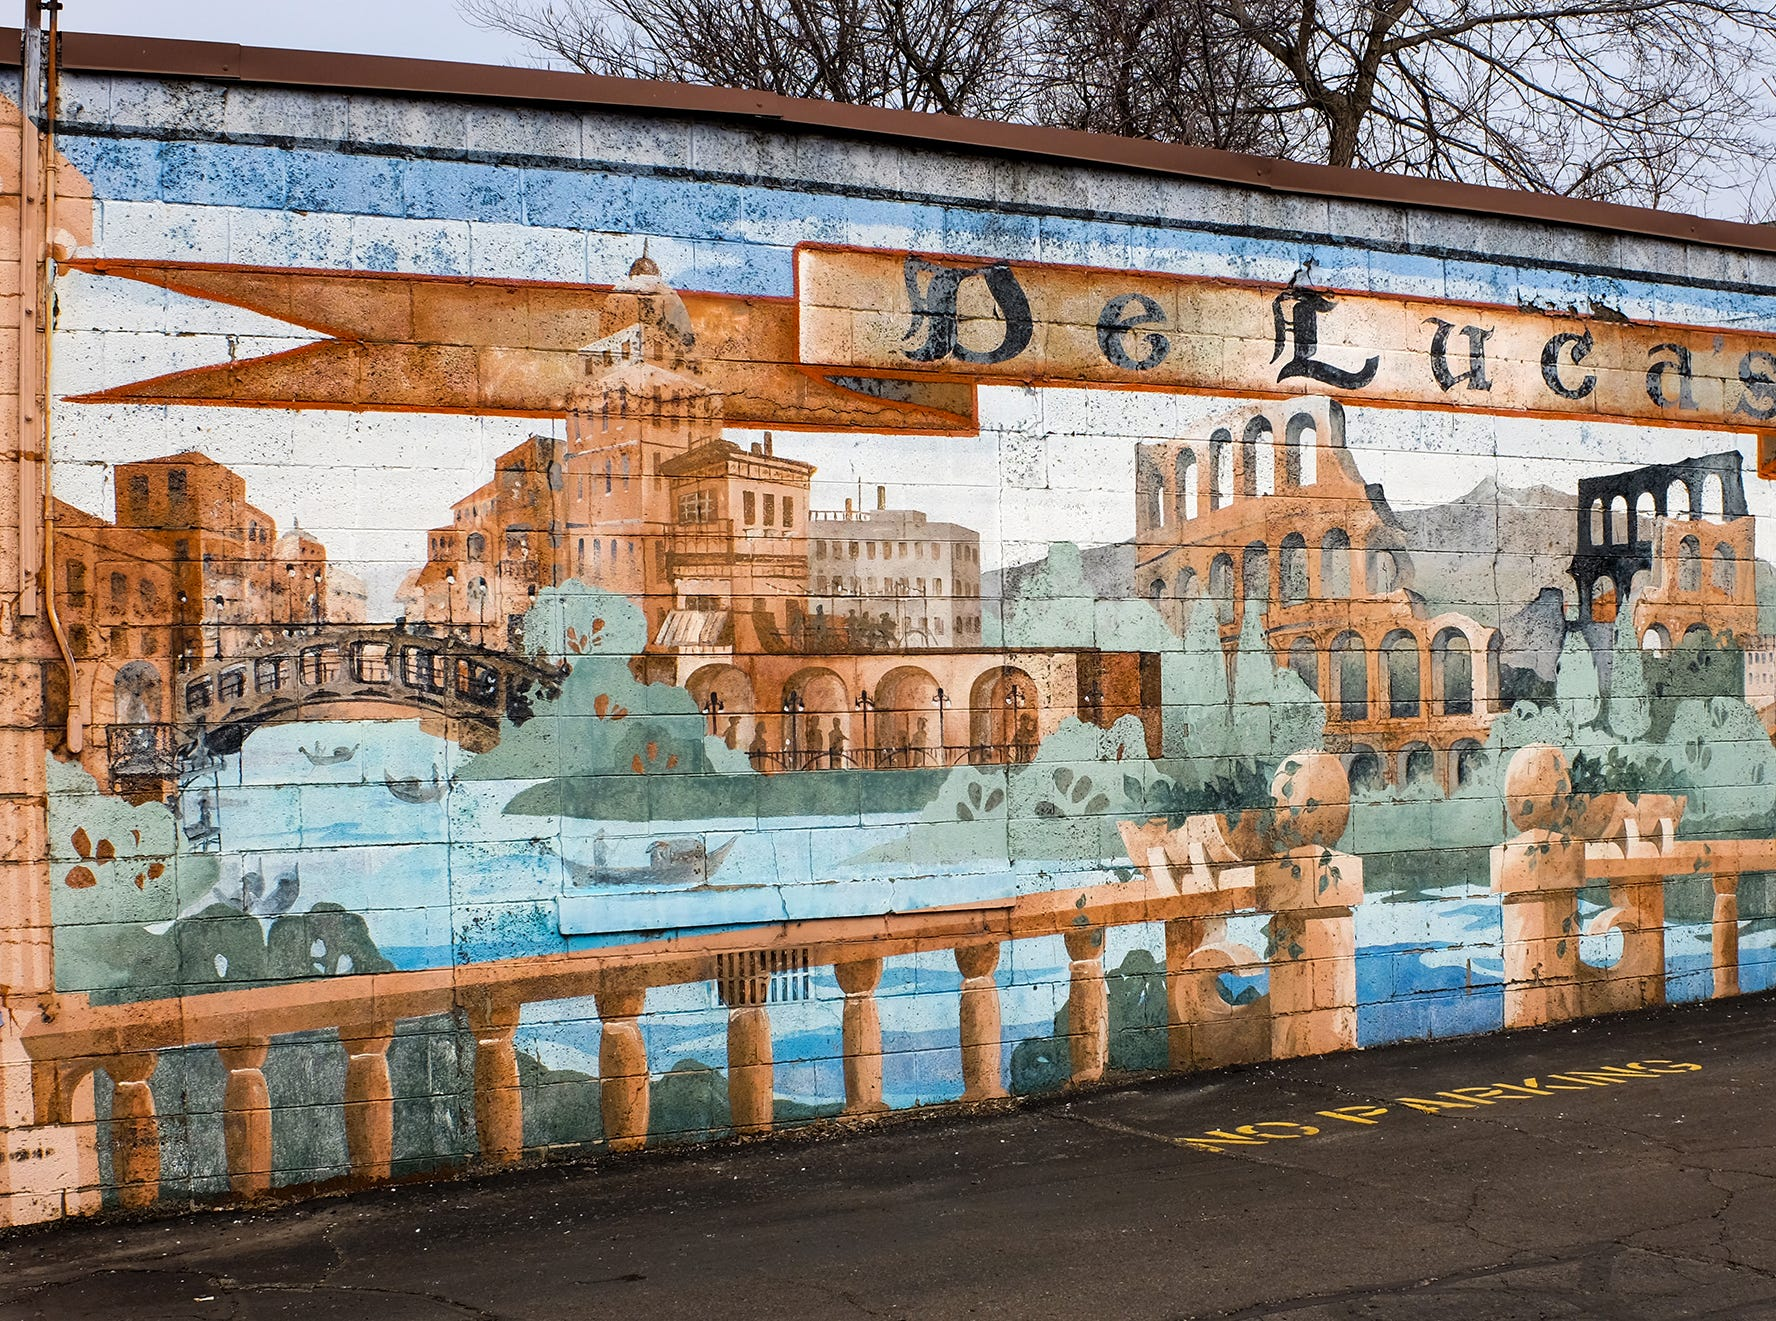 The mural at DeLuca's on Willow Street in Lansing was created by Gary Glenn in 1998 and is one of the oldest in Lansing.